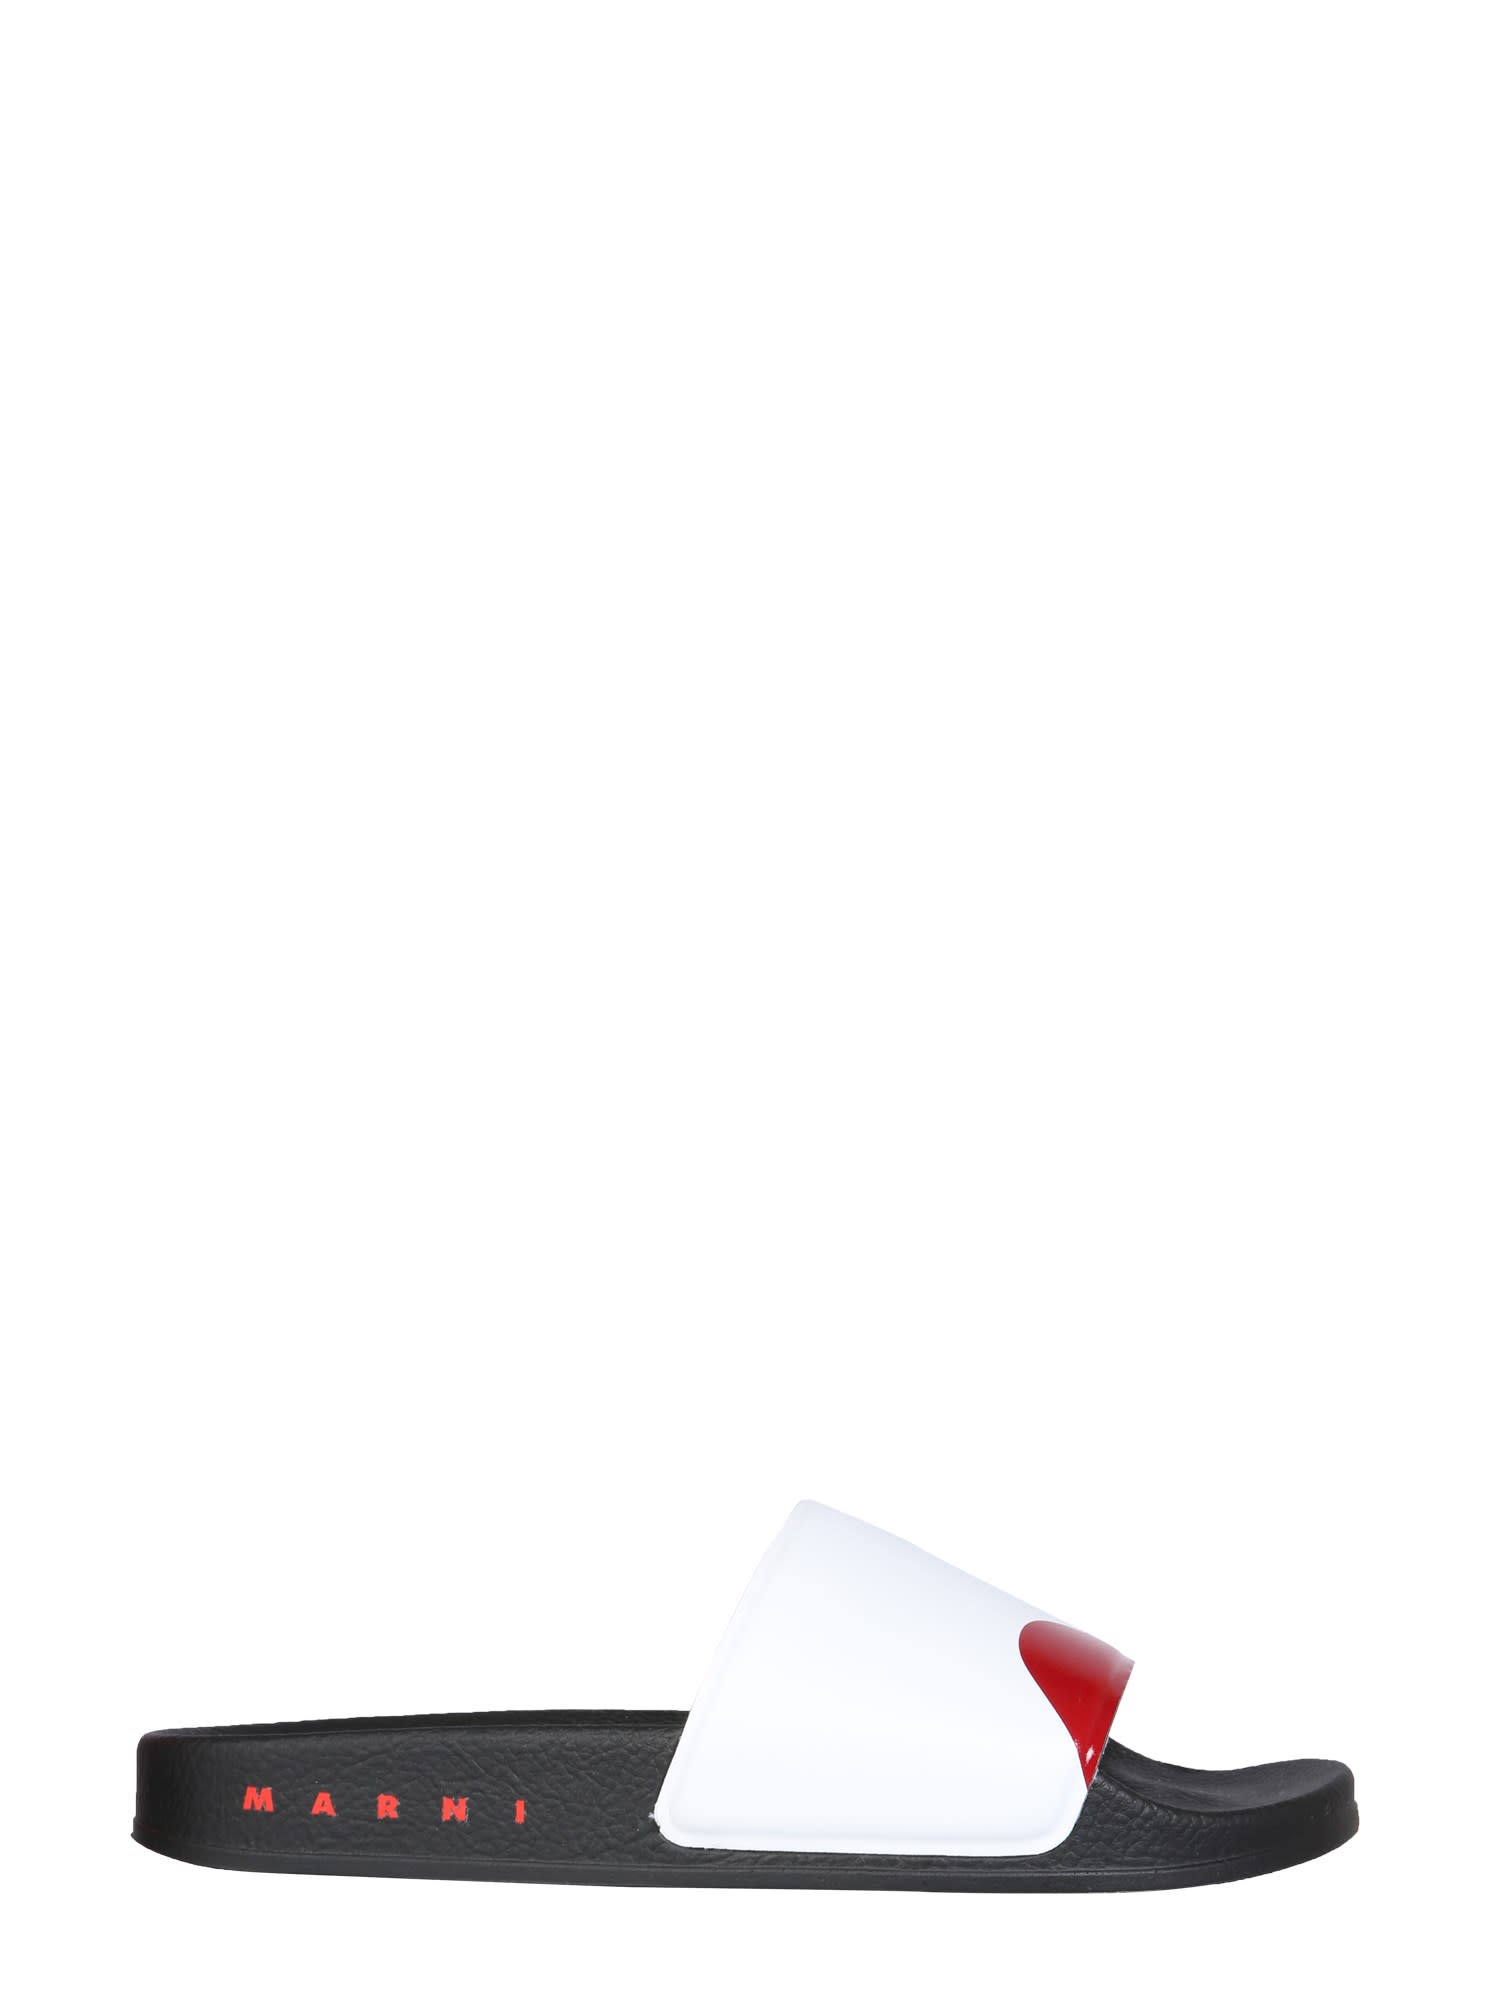 Buy Marni Slide Sandals online, shop Marni shoes with free shipping